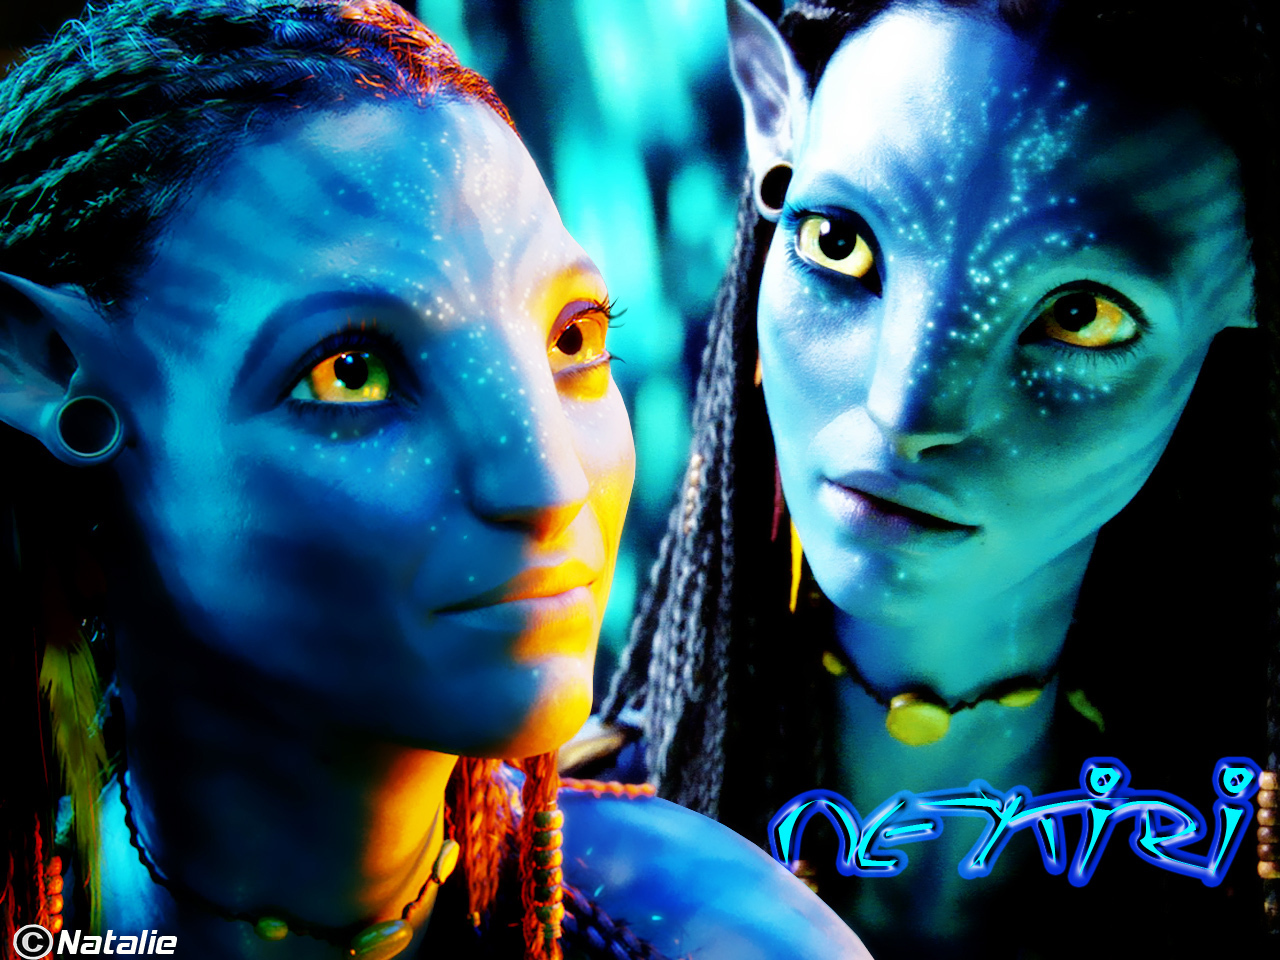 Avatar Neytiri Actress | www.imgkid.com - The Image Kid ...